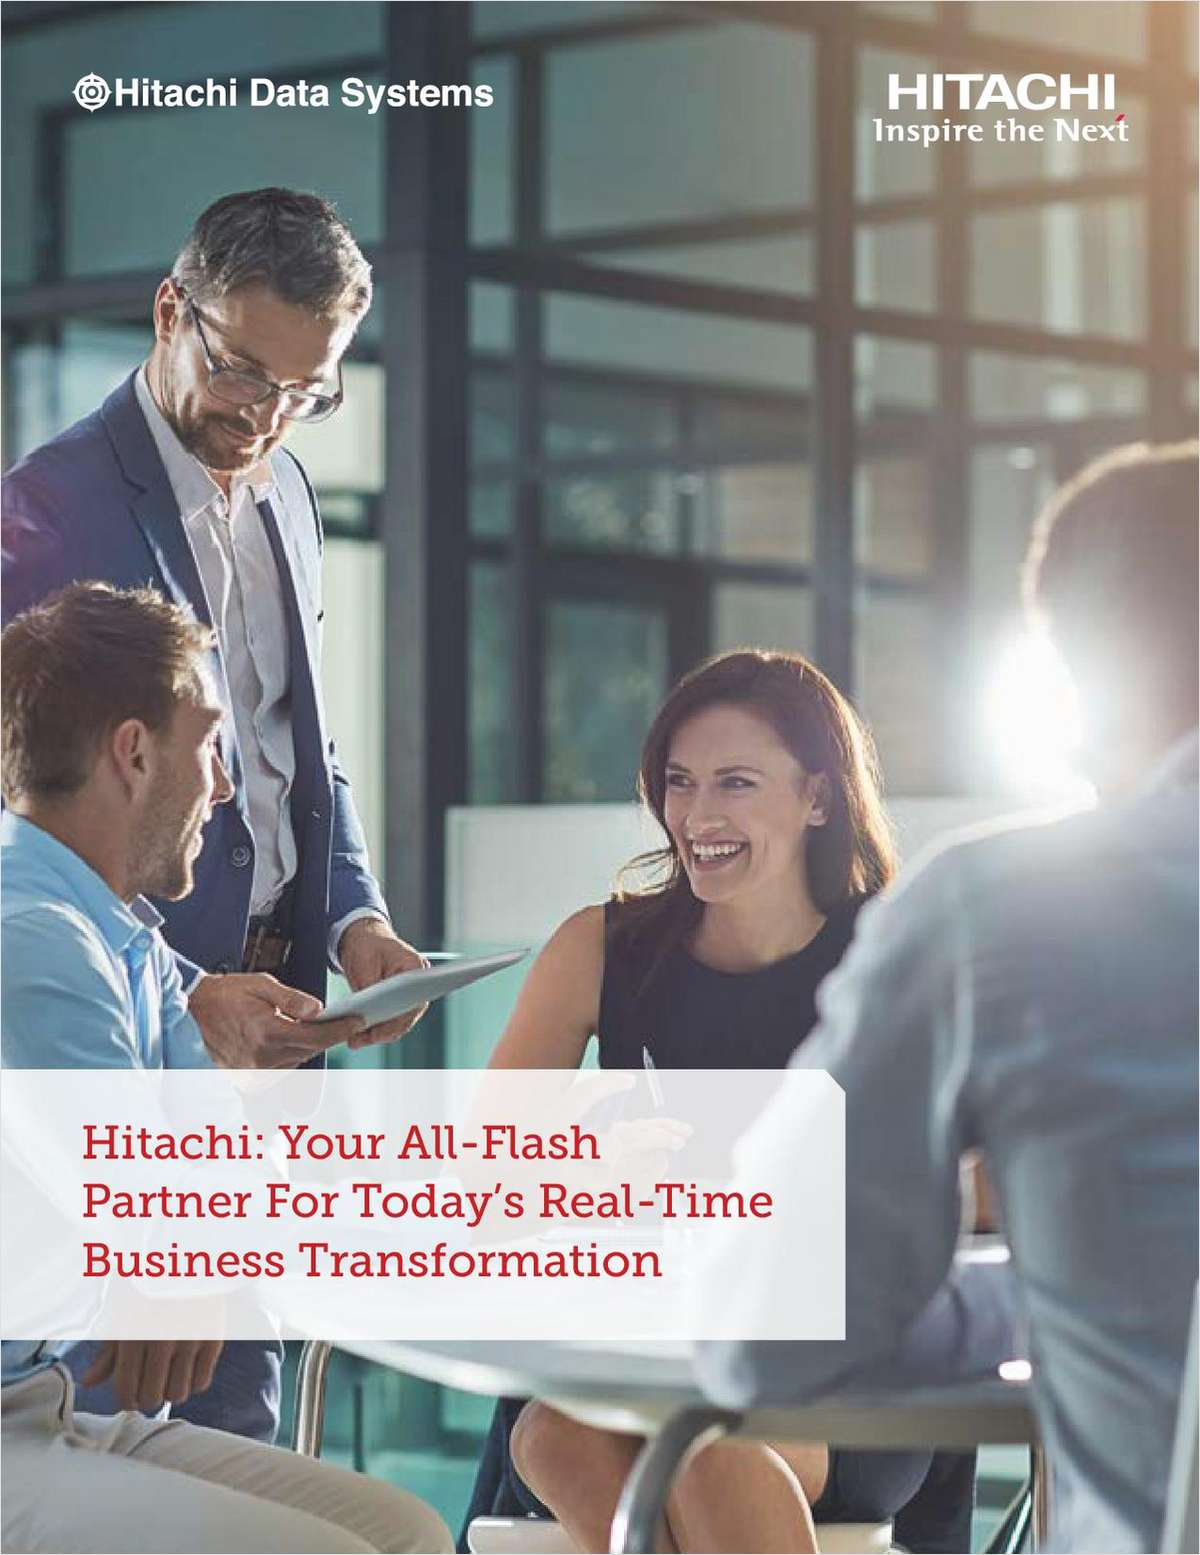 Your All-Flash Partner for Today's Real-Time Business Transformation